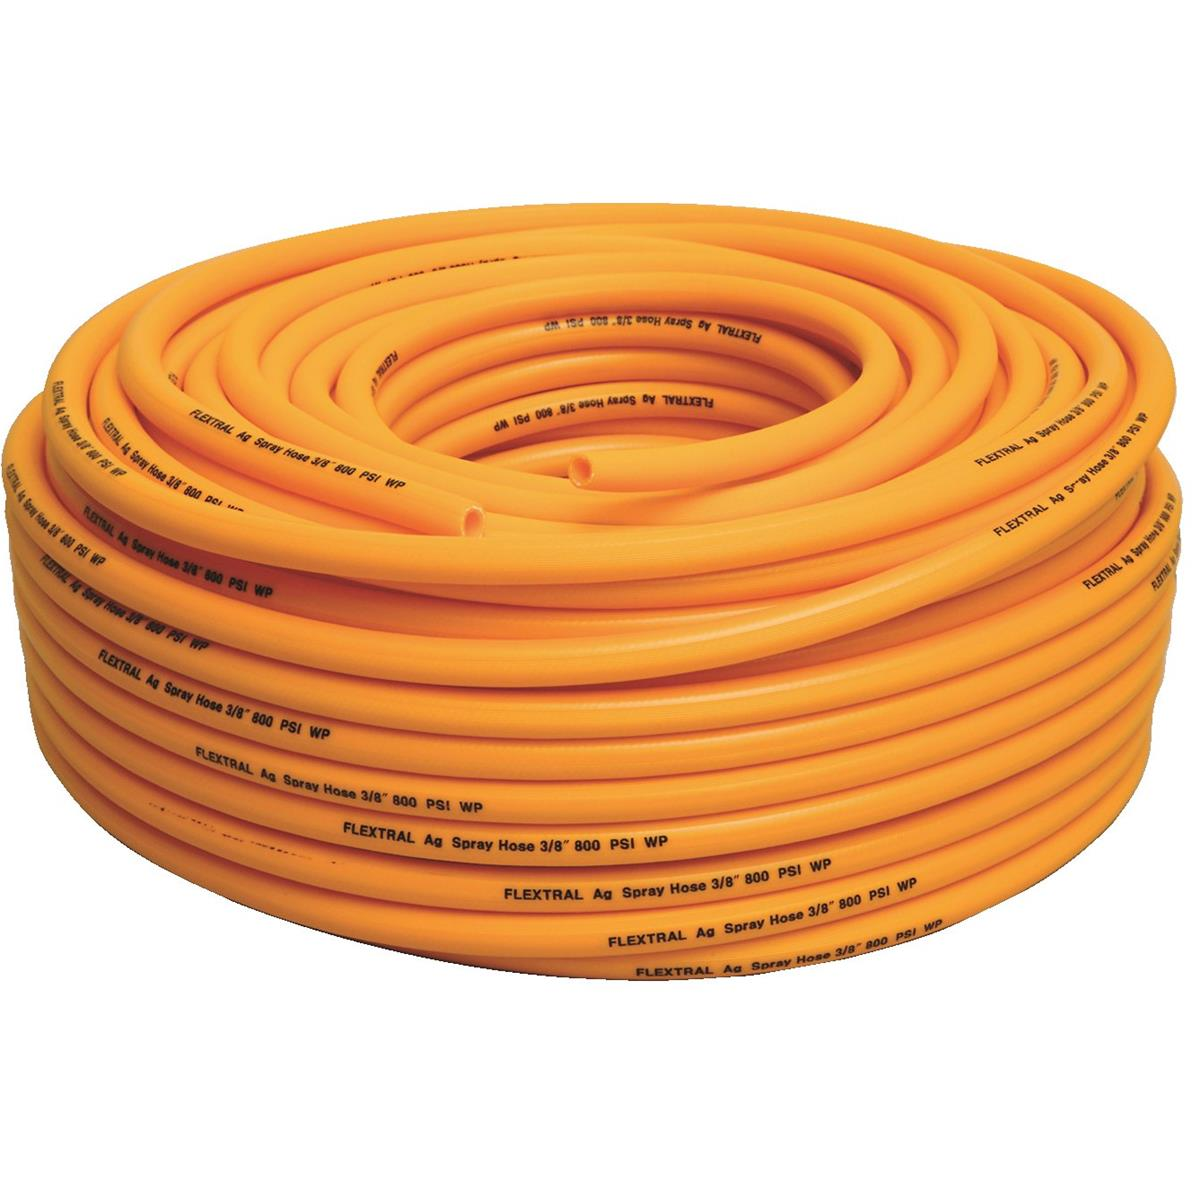 "High-pressure 3/8"" I.D. 100'L PVC Sprayer Hose"